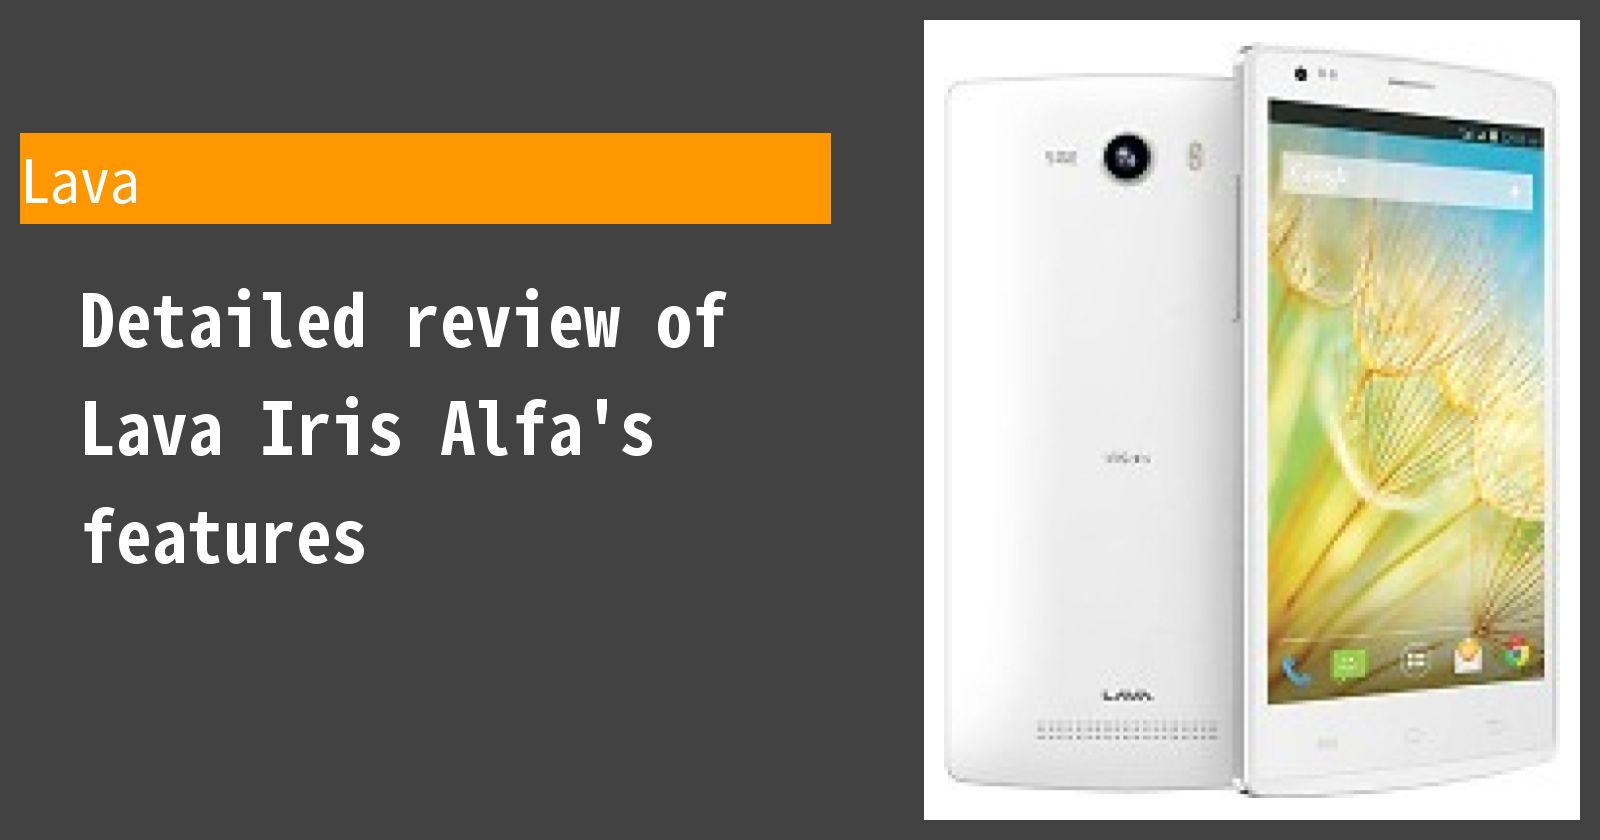 Detailed review of Lava Iris Alfa's features